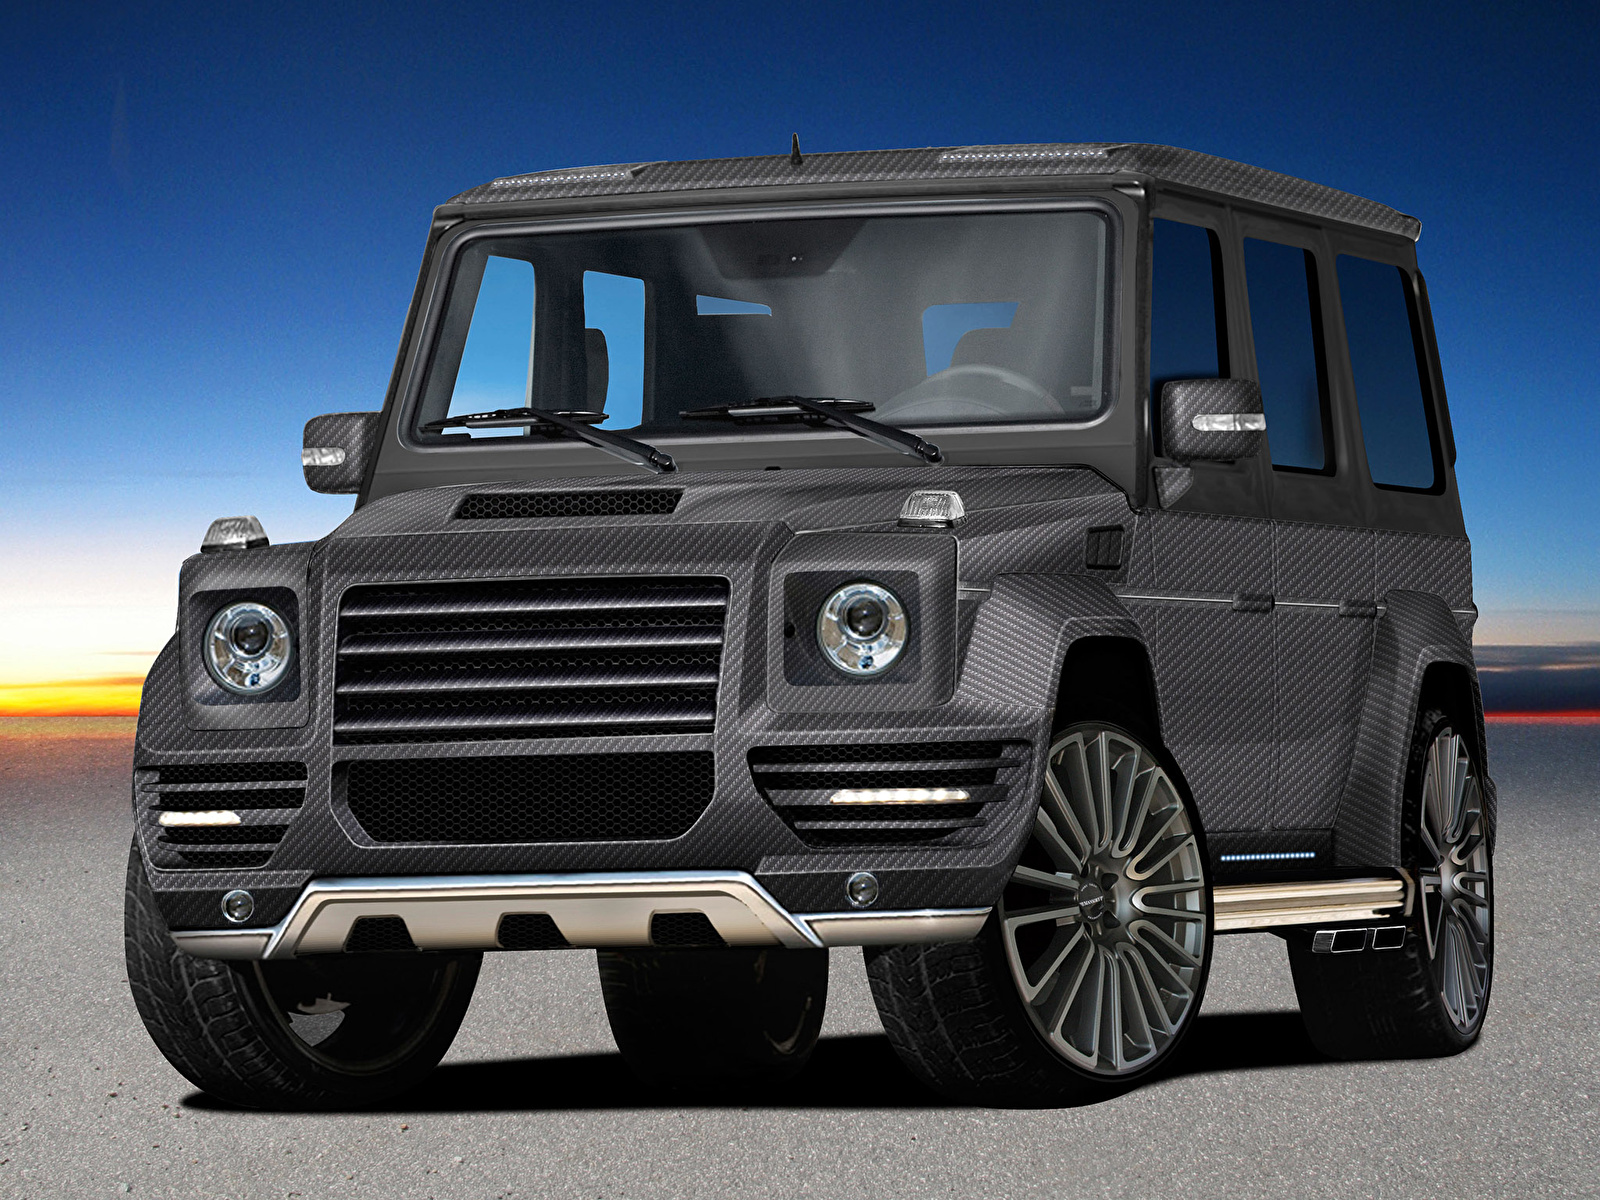 Фотографии Автомобили Mercedes-Benz Mansory G-Couture Гелентваген 1600x1200 авто машина машины автомобиль Мерседес бенц G-класс